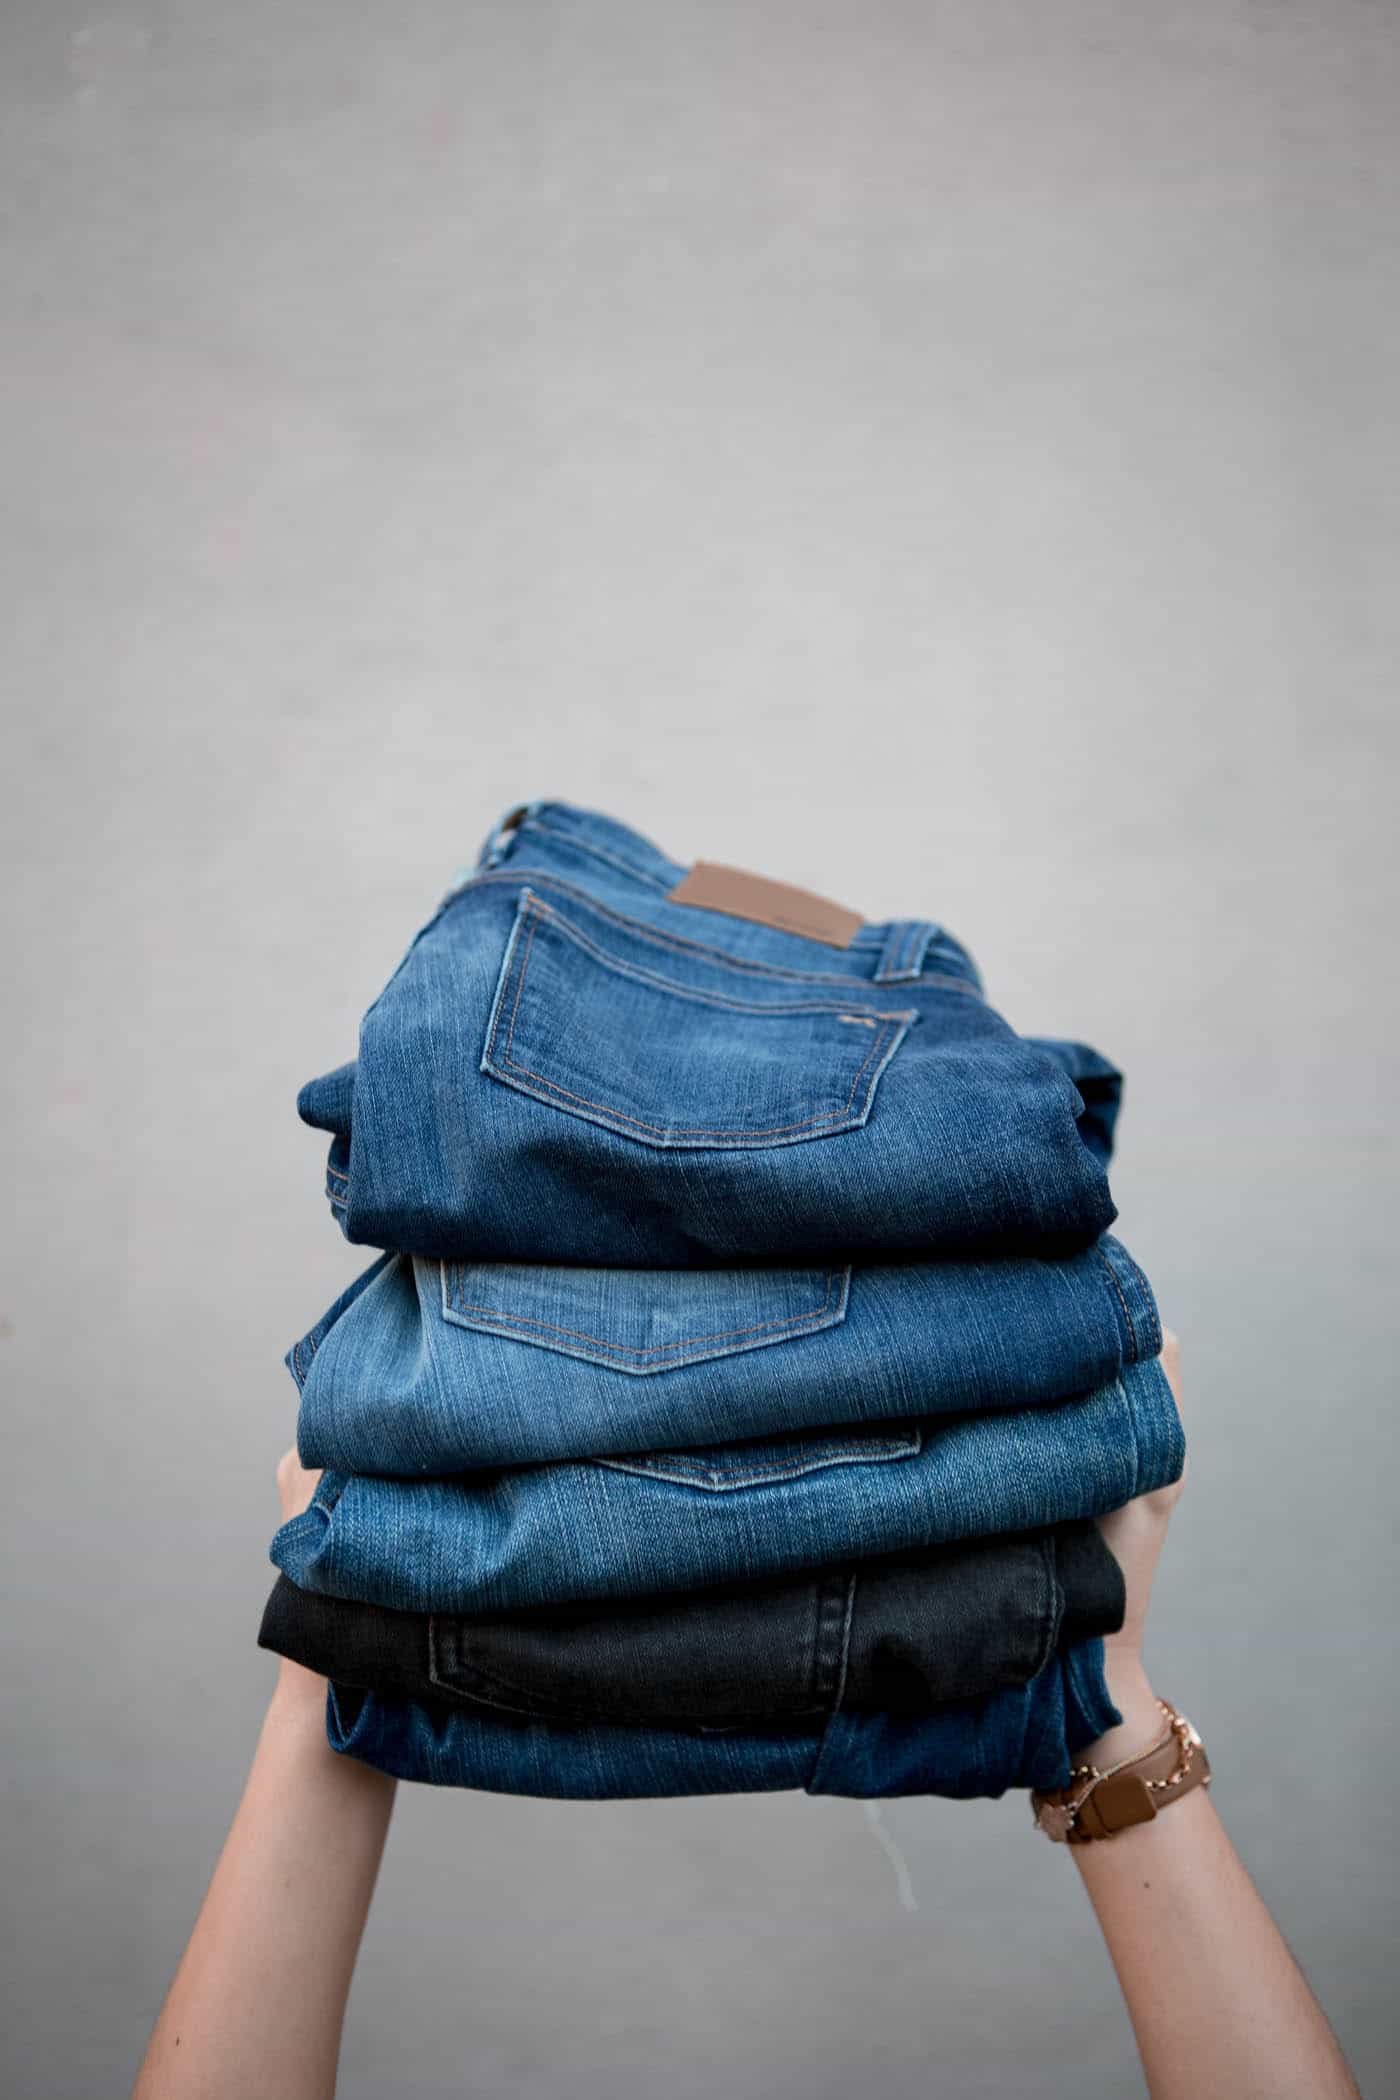 stacked jeans, folded jeans, how to care for your jeans